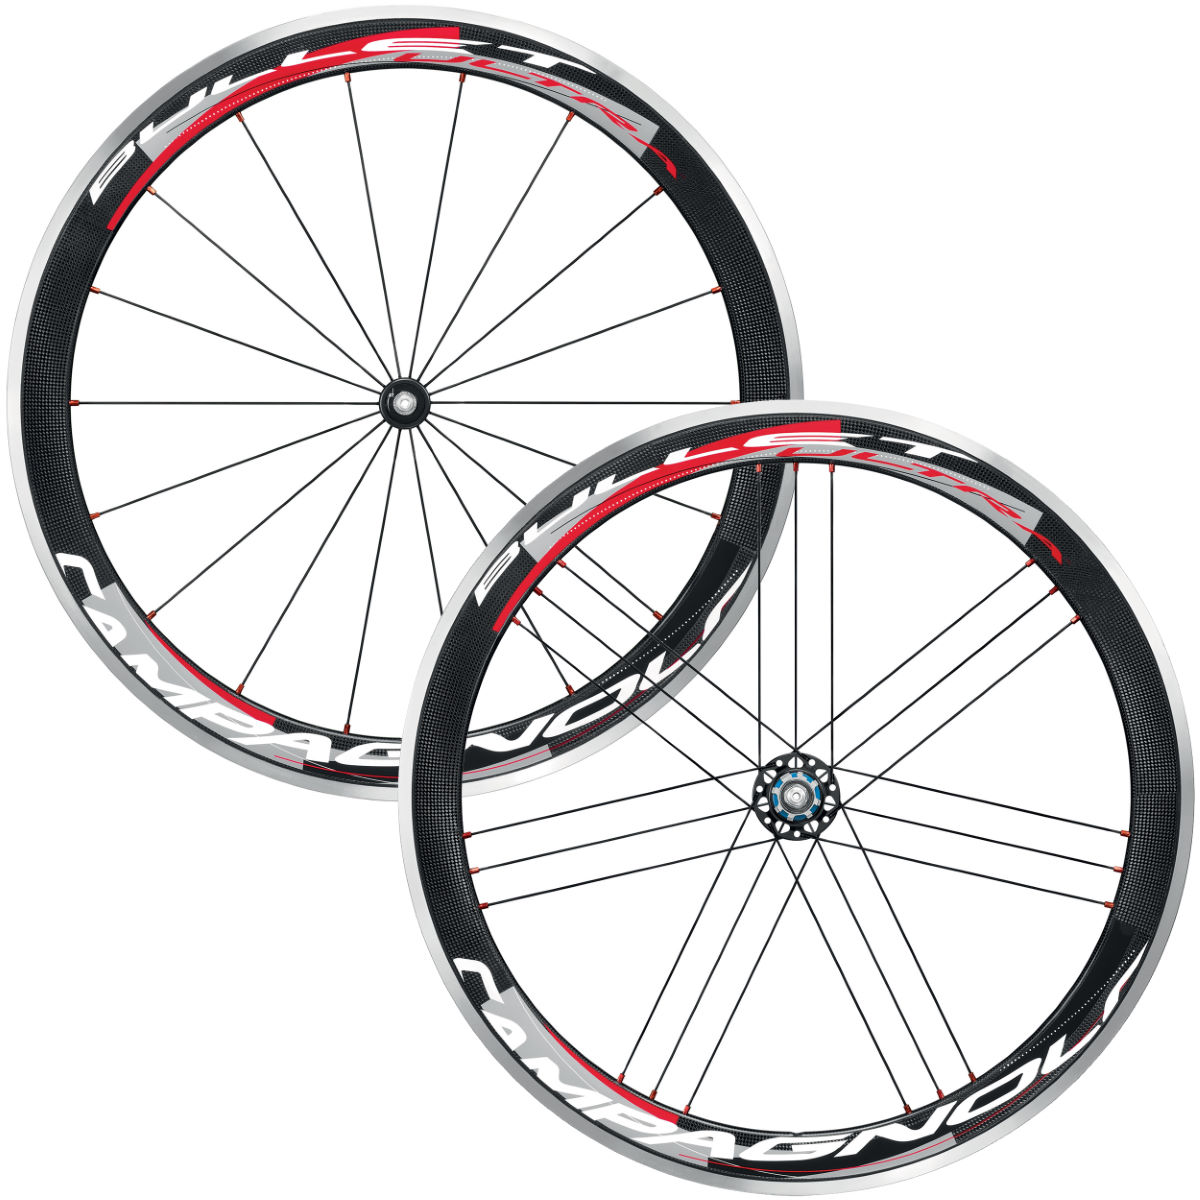 Wheel set Campagnolo Bullet Ultra 50 Cult Bright Label (carbon) - Wheel sets